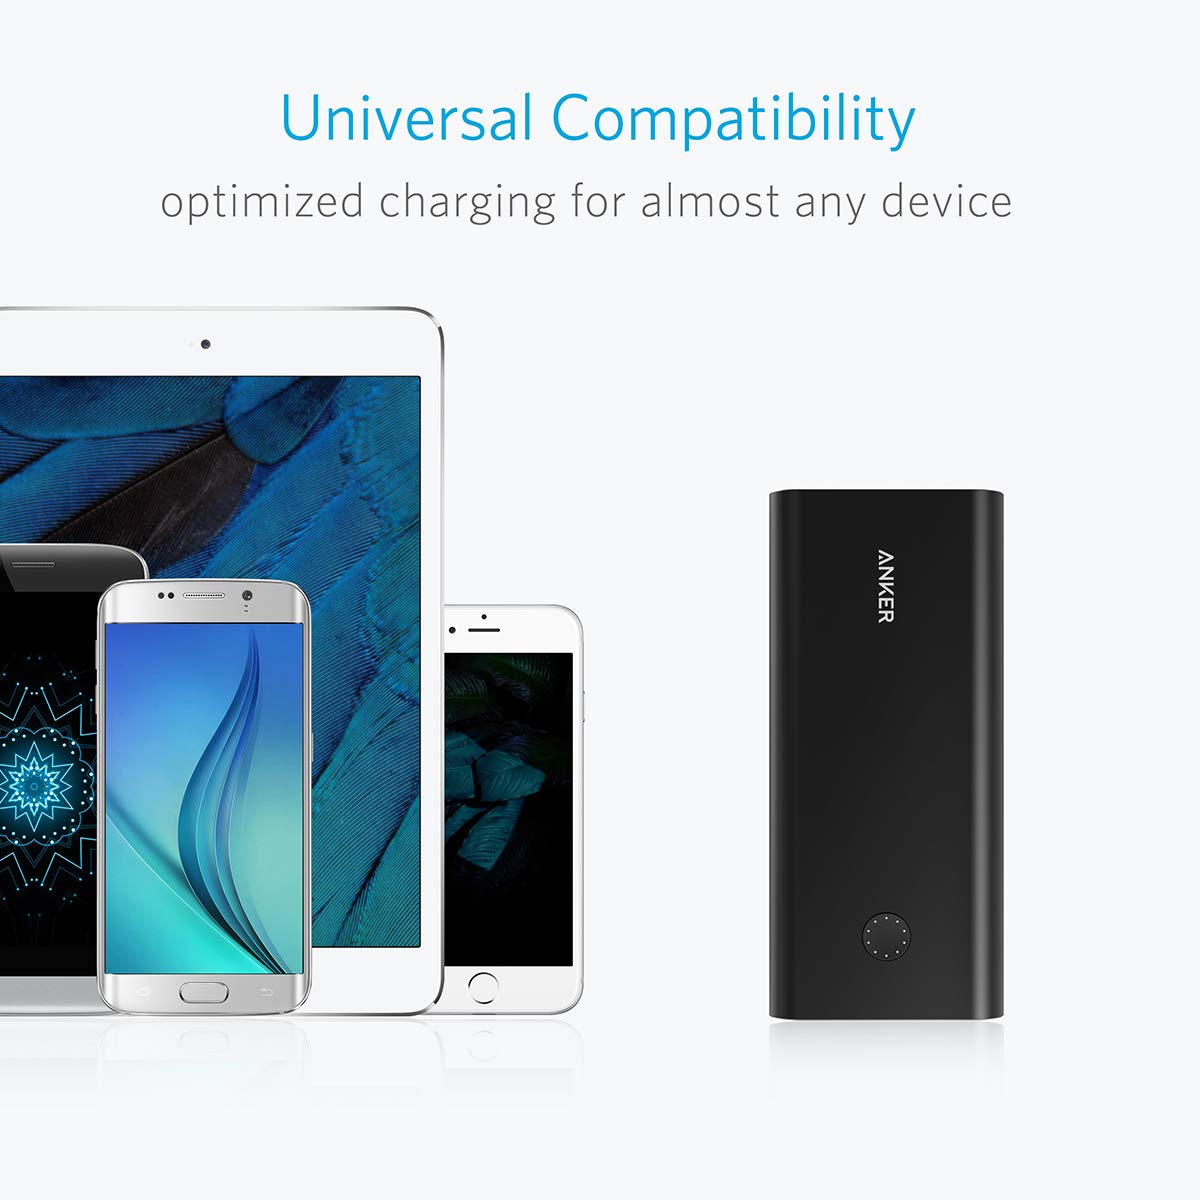 Anker PowerCore+ 26800, Premium Portable Charger, High Capacity 26800mAh External Battery with Qualcomm Quick Charge 3.0 (in- and Output), Includes PowerPort+ 1 Wall Charger by Anker (Image #8)